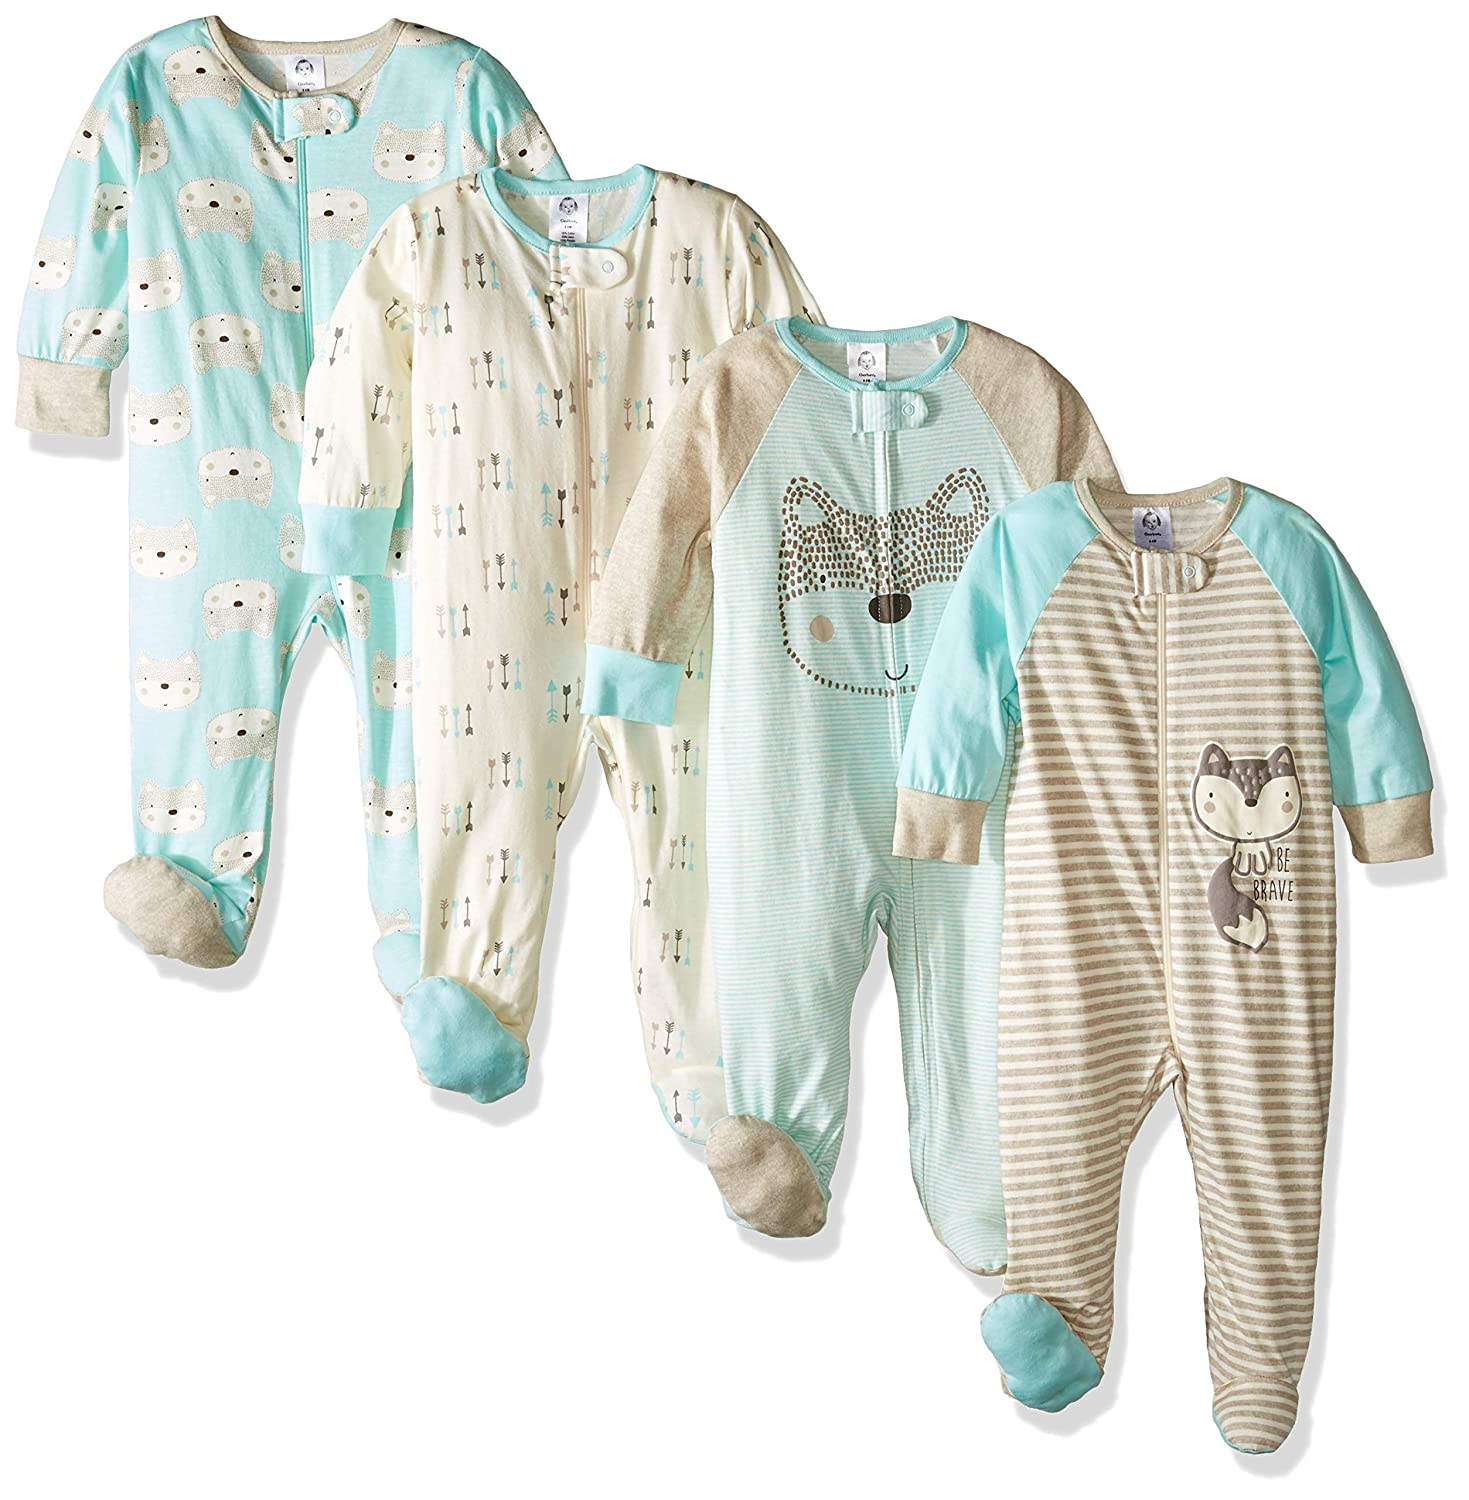 76291db2a Amazon.com  Gerber Baby Boys  4-Pack Sleep  N Play  Clothing